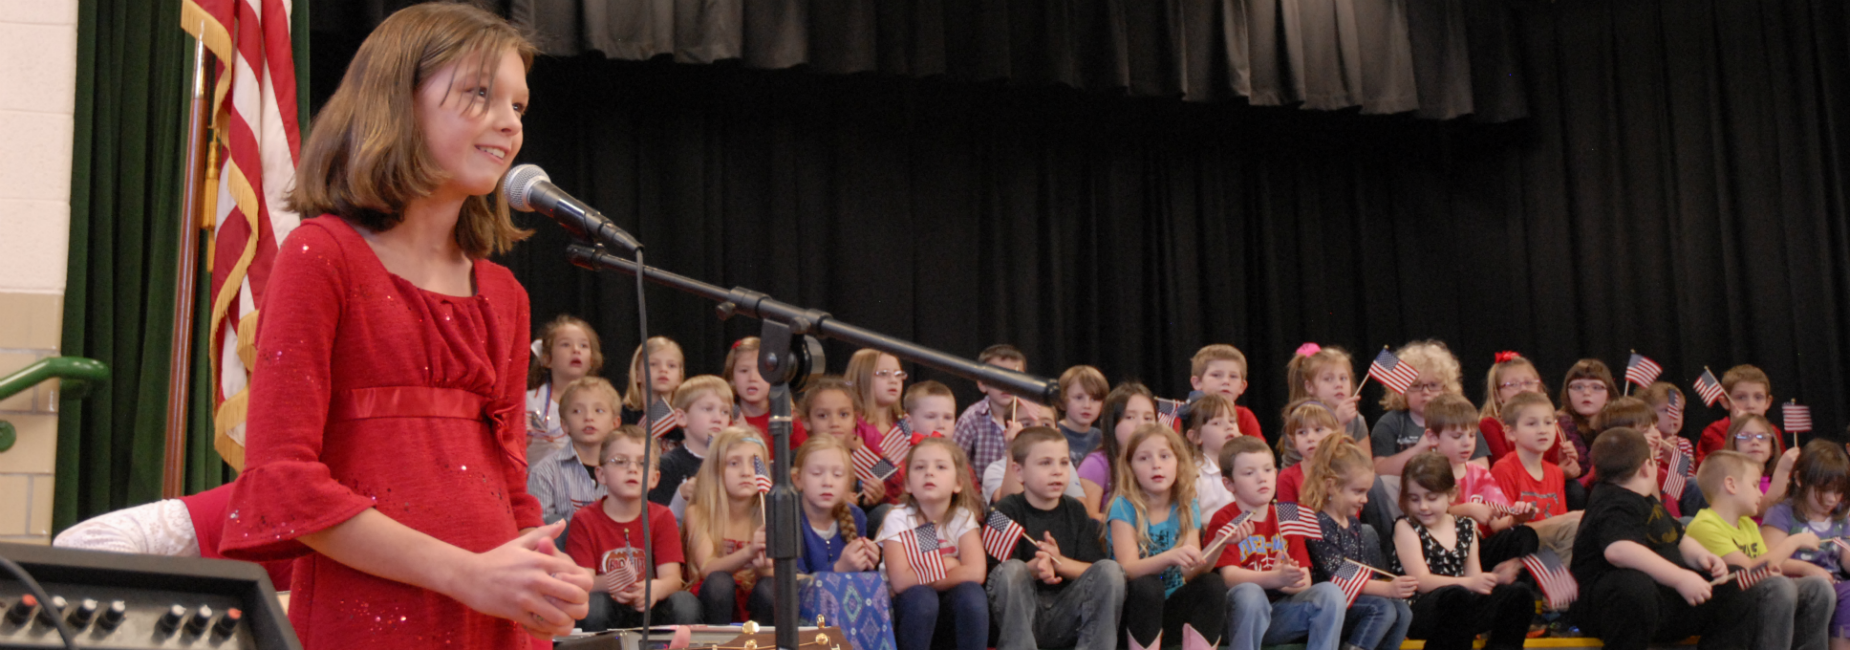 Fifth-grade girl singing during Sugar Grove Elementary School's Veterans Day assembly.